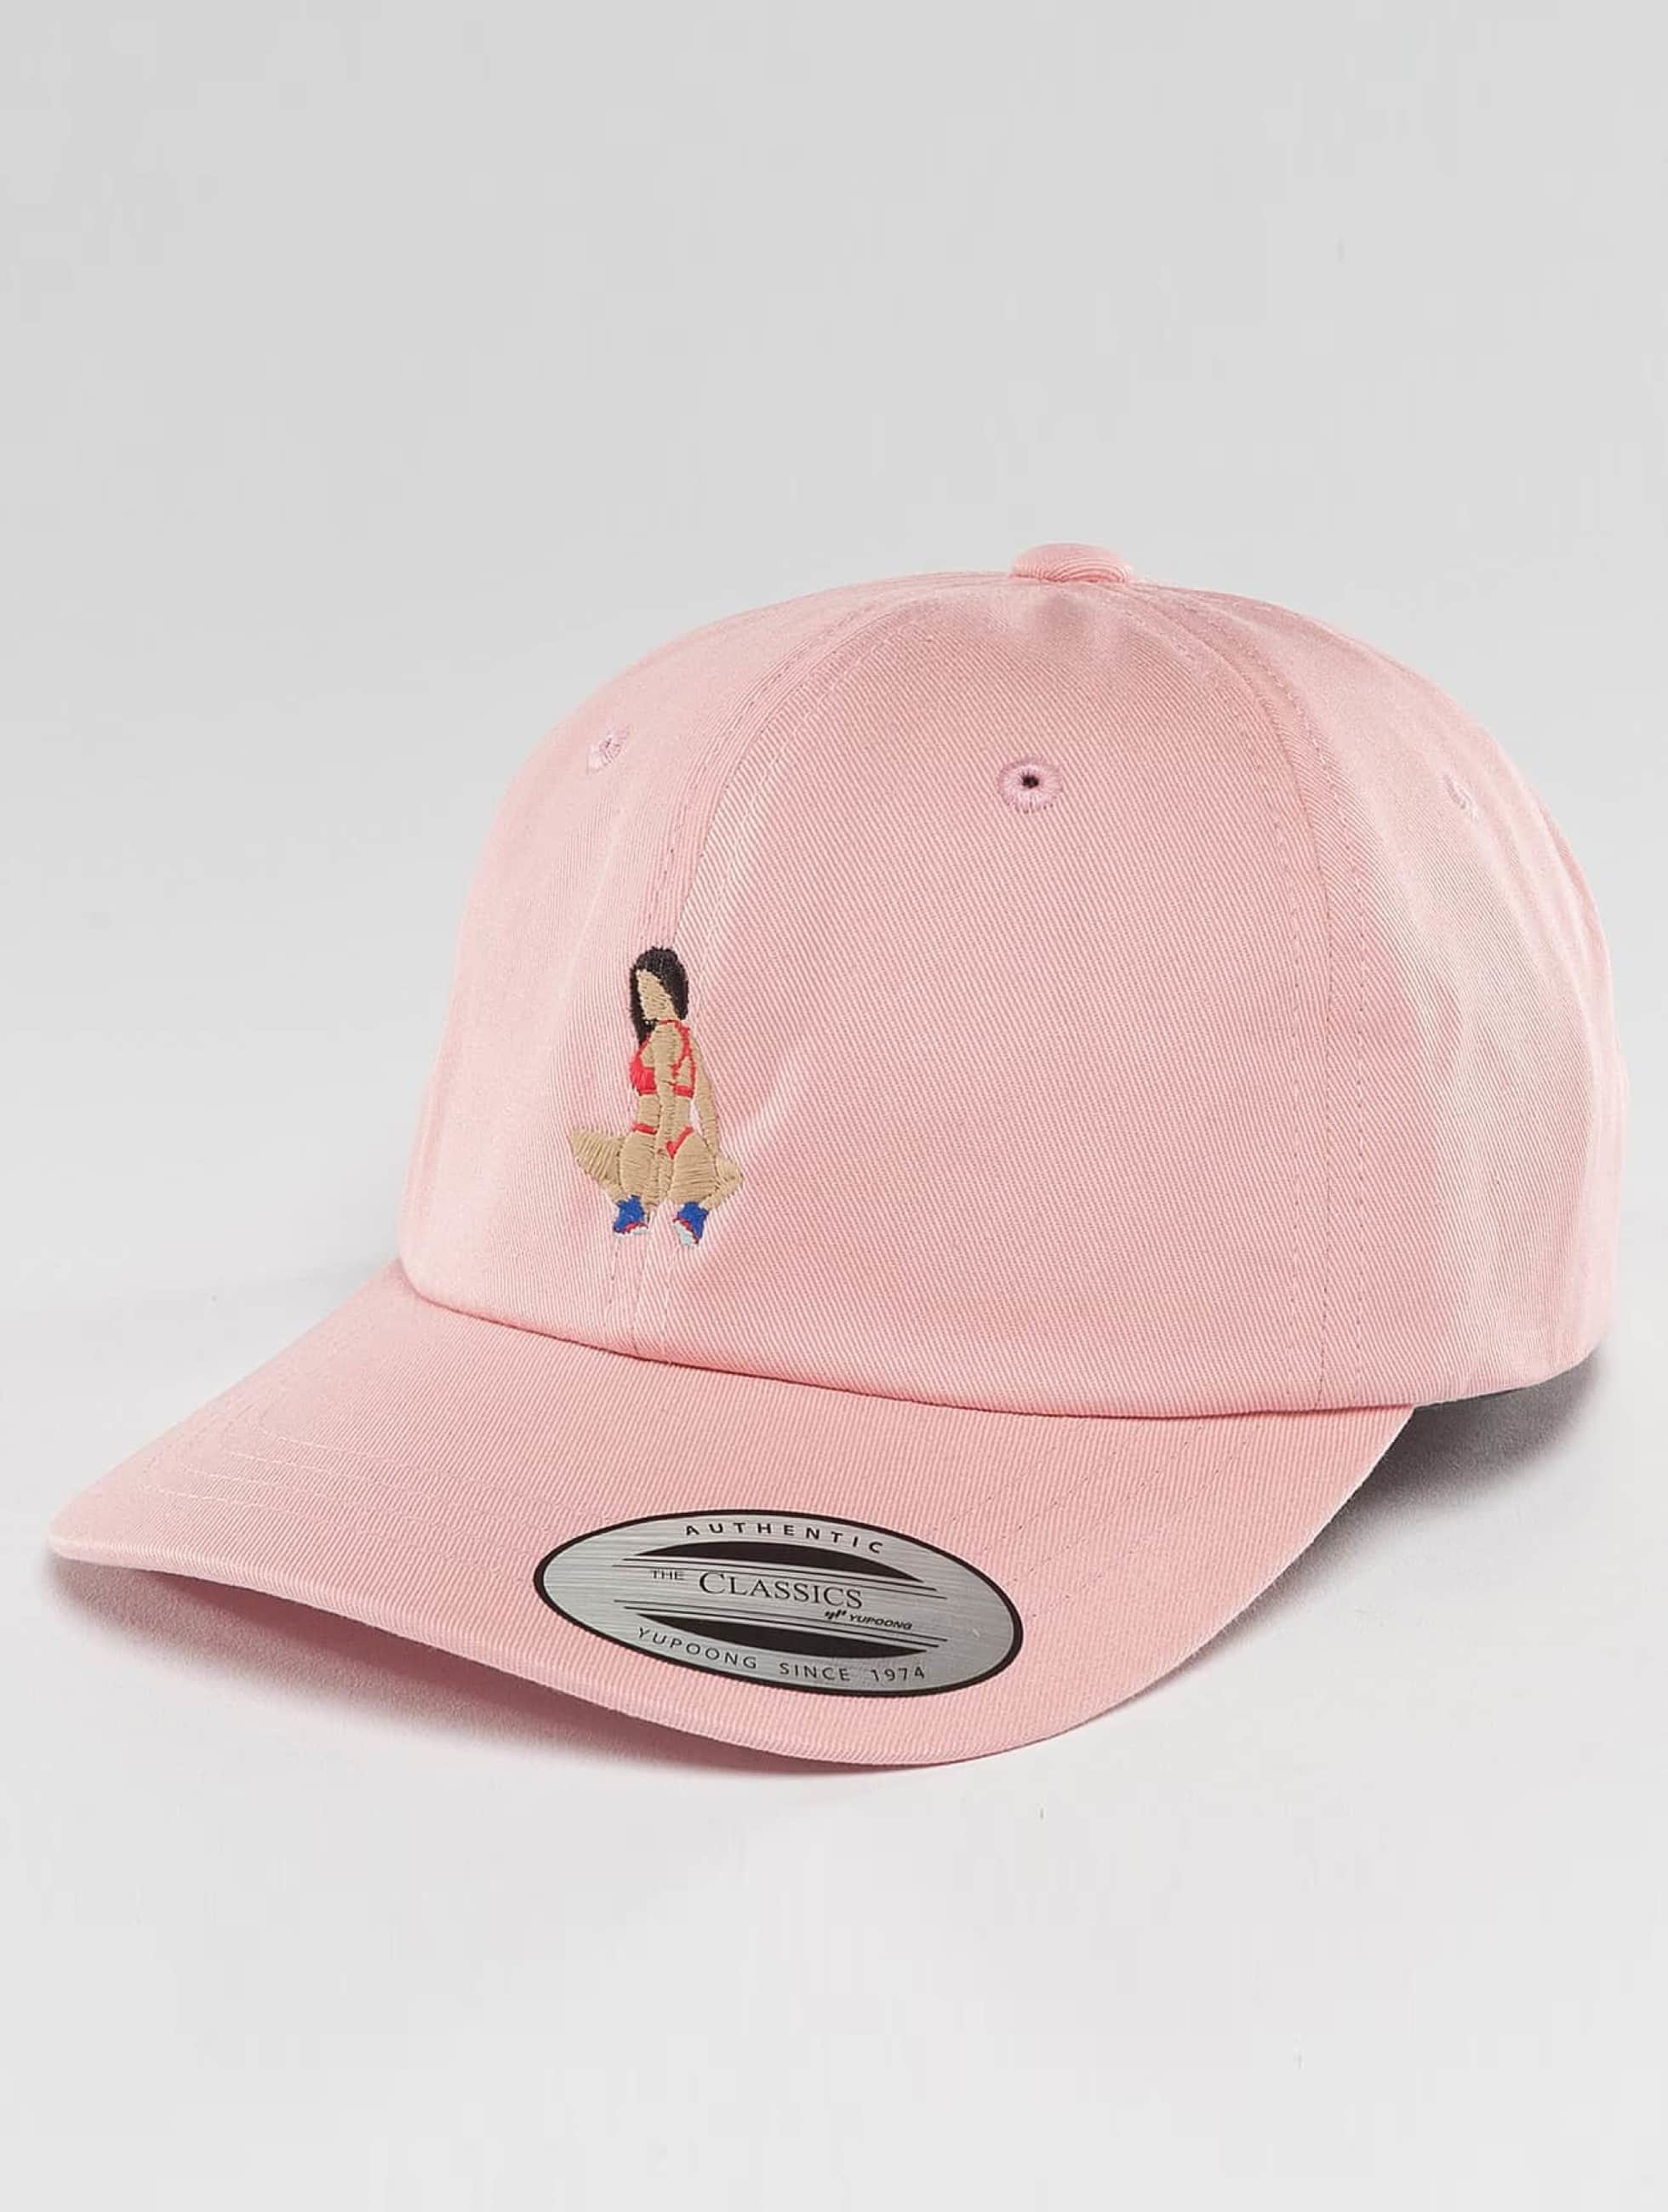 TurnUP Männer,Frauen Snapback Cap Implants in pink